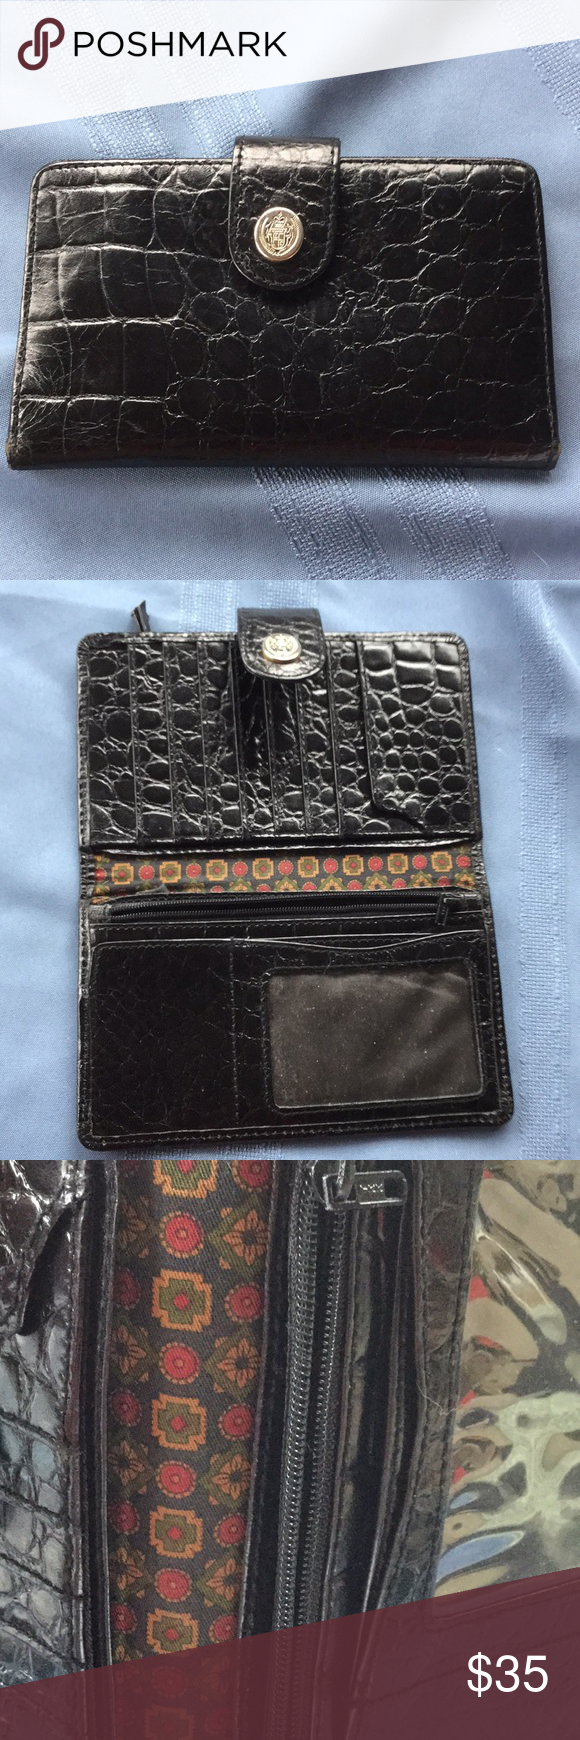 Wallet Black Leather Black Leather Wallet Black Leather Wallet